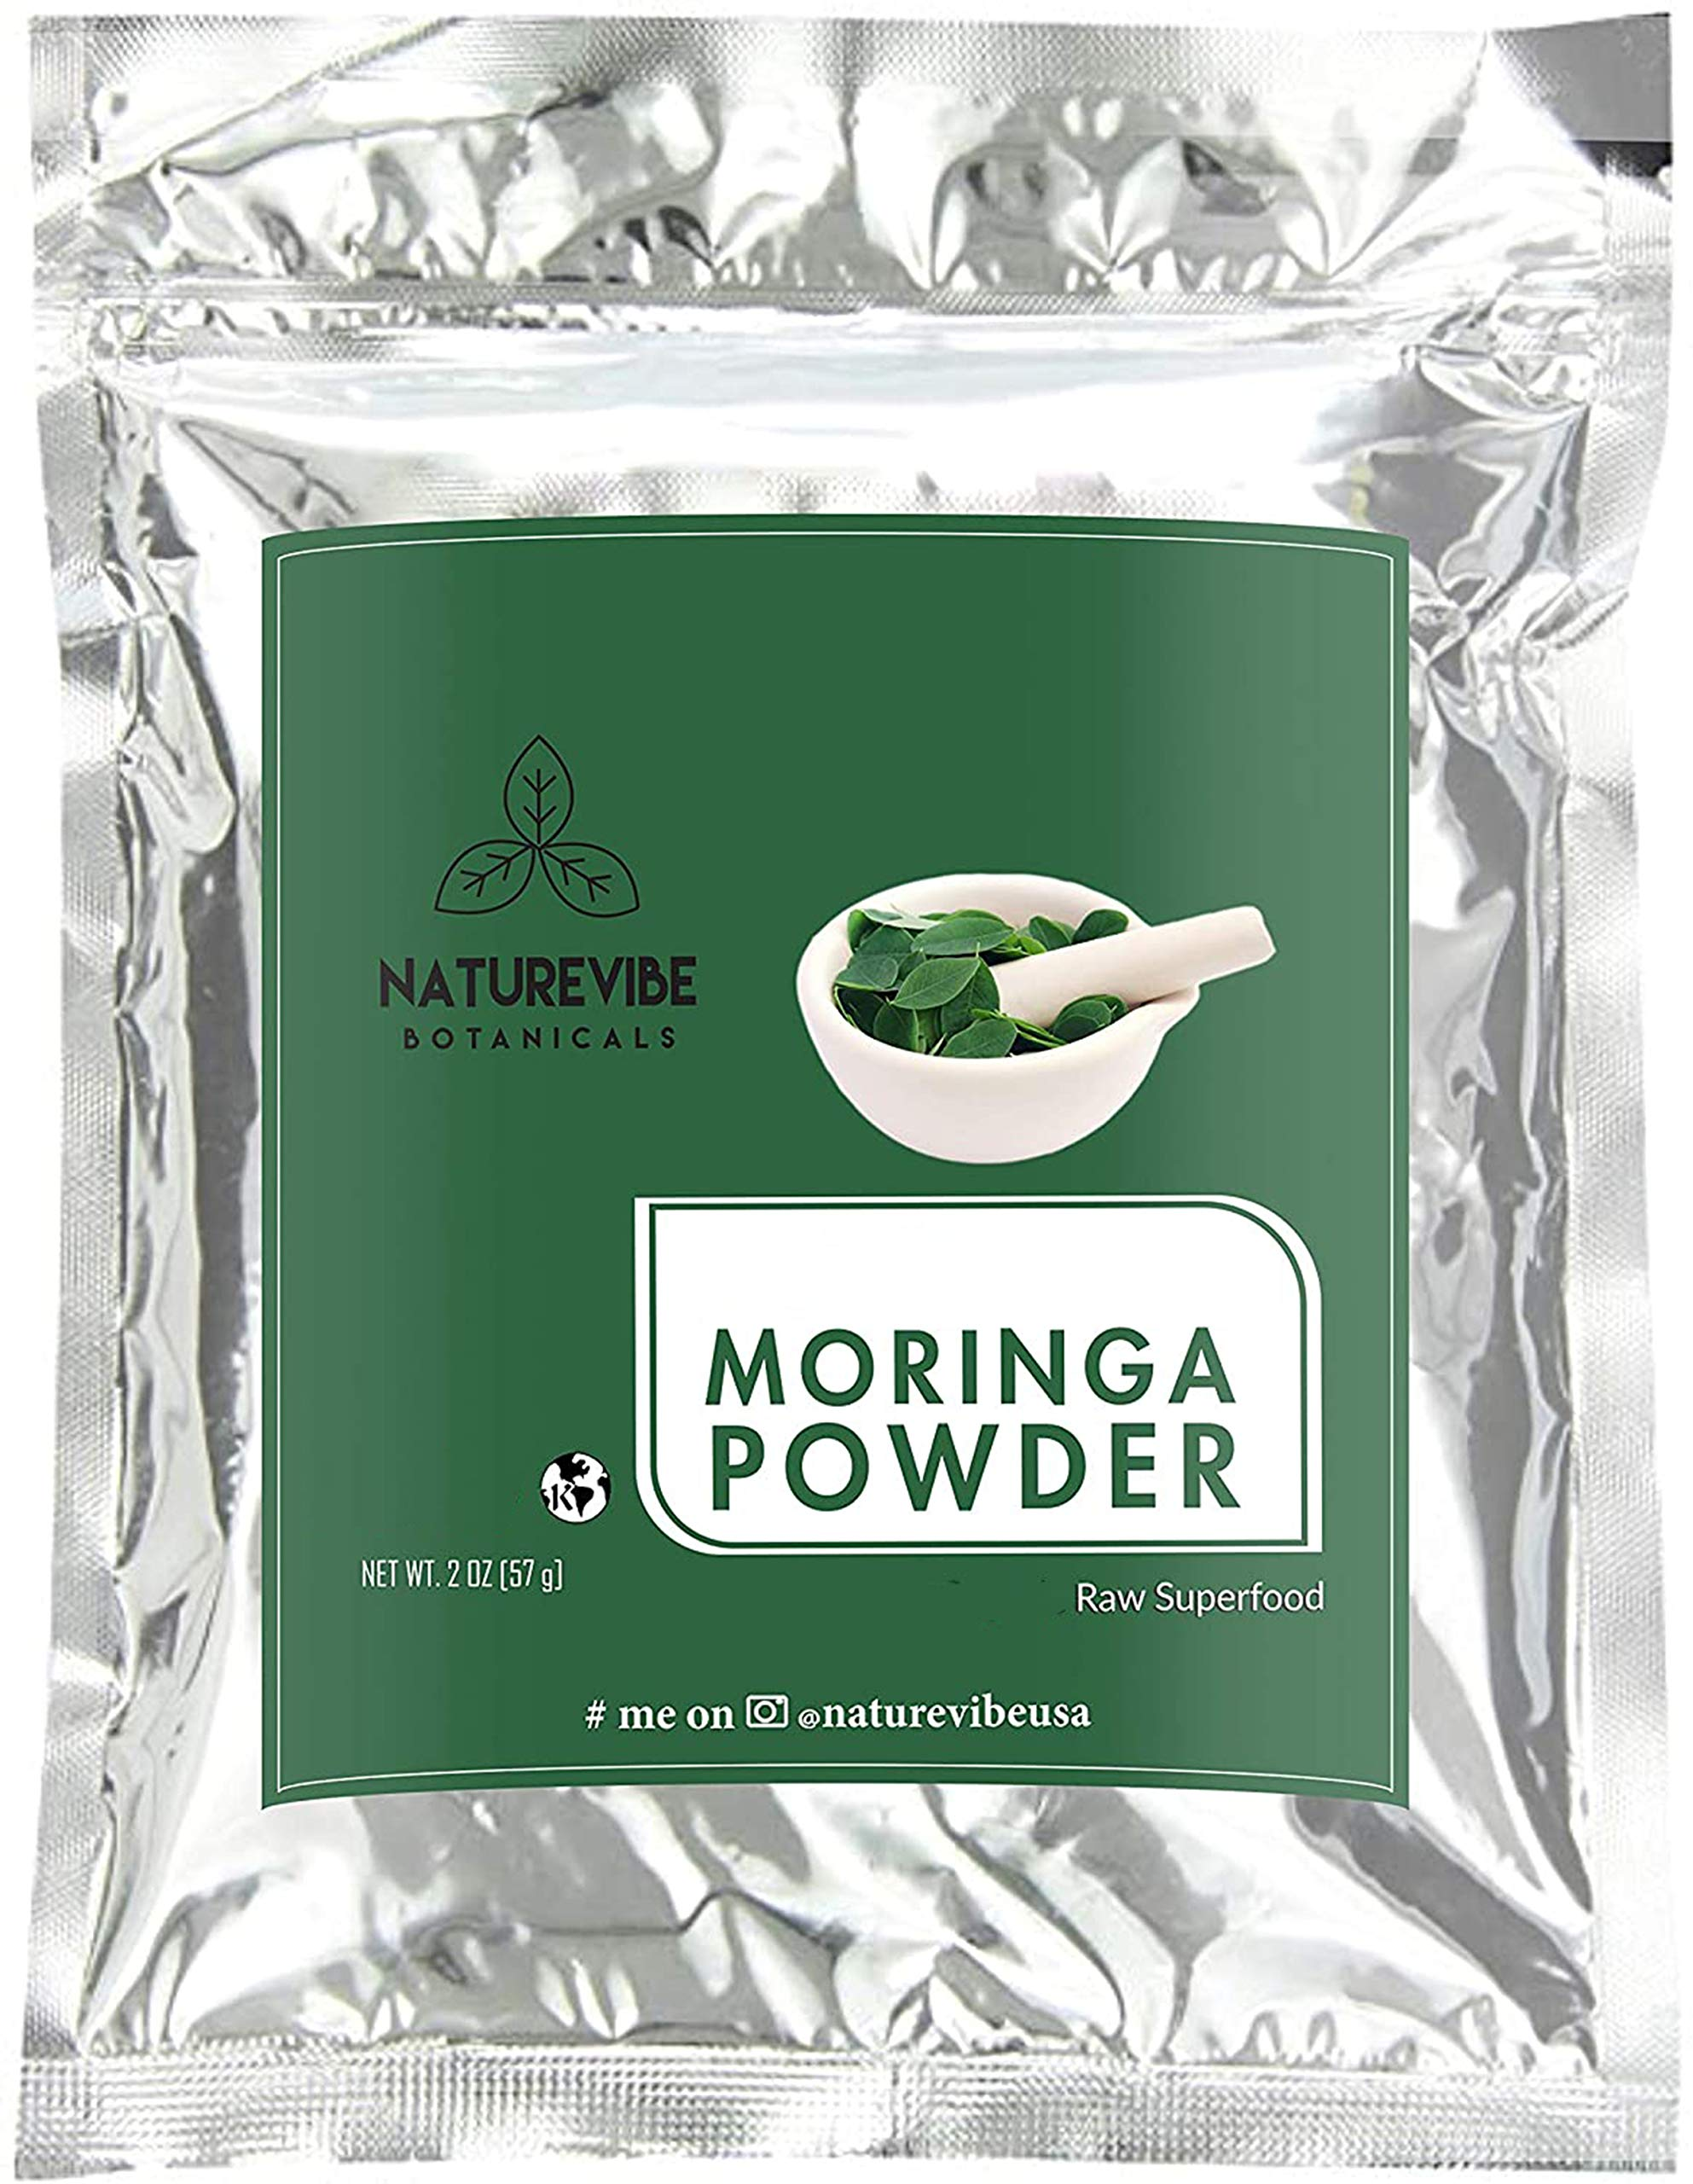 Premium Moringa Powder by Naturevibe Botanicals (2oz), Non GMO and Gluten Free | Rich in Multi-Vitamin | Great in Drinks and Smoothies | Supports Weight Loss.